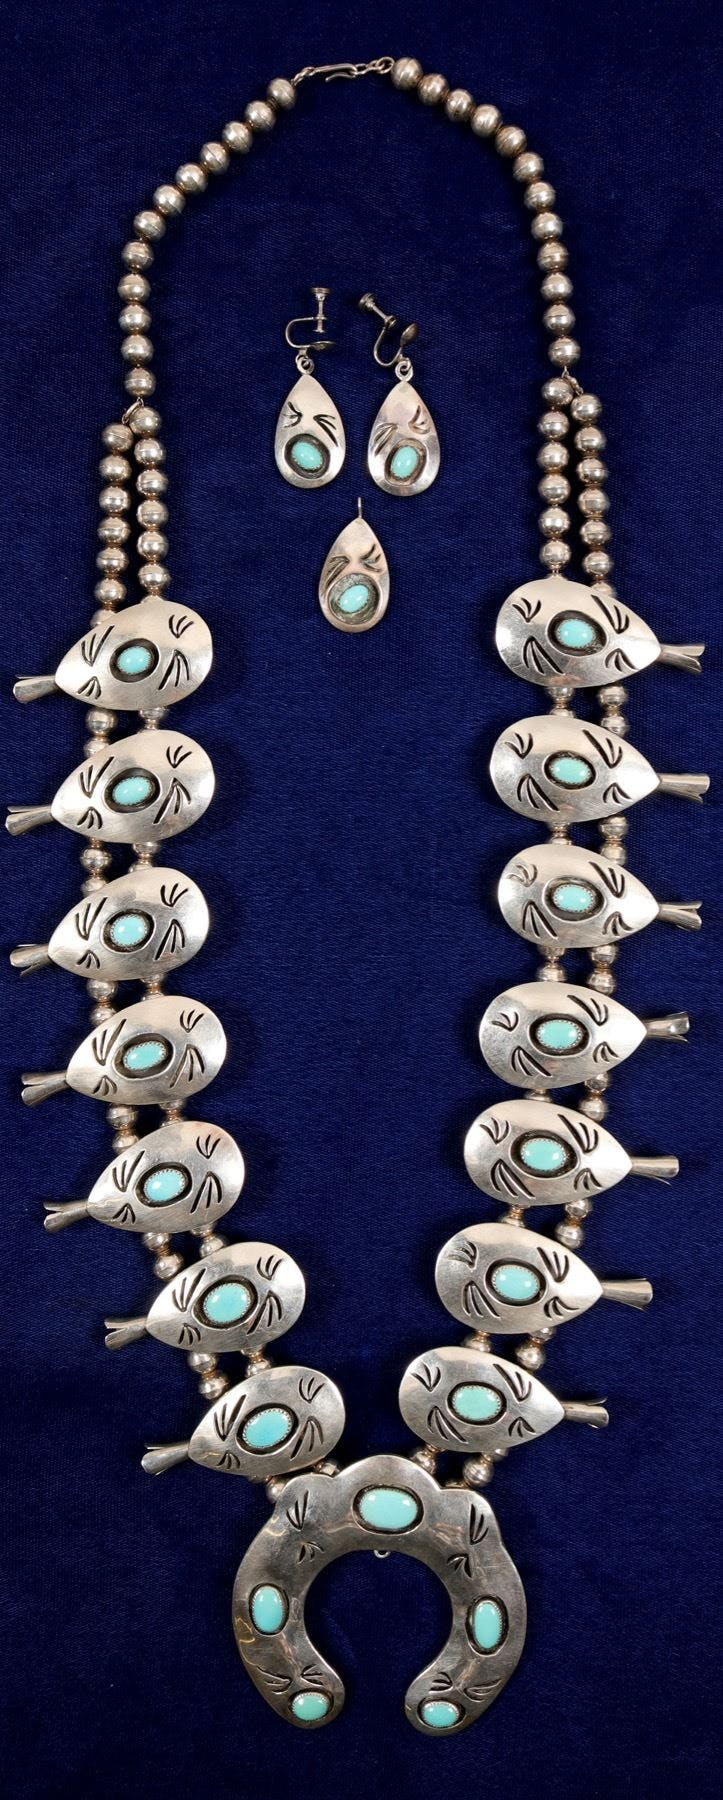 Native American jewelry consisting of a sterling silver squash blossom necklace, 18 inches long, a pair of earrings and a pendant to match. Made in New Mexico in the 1980s (est. $300-$500)